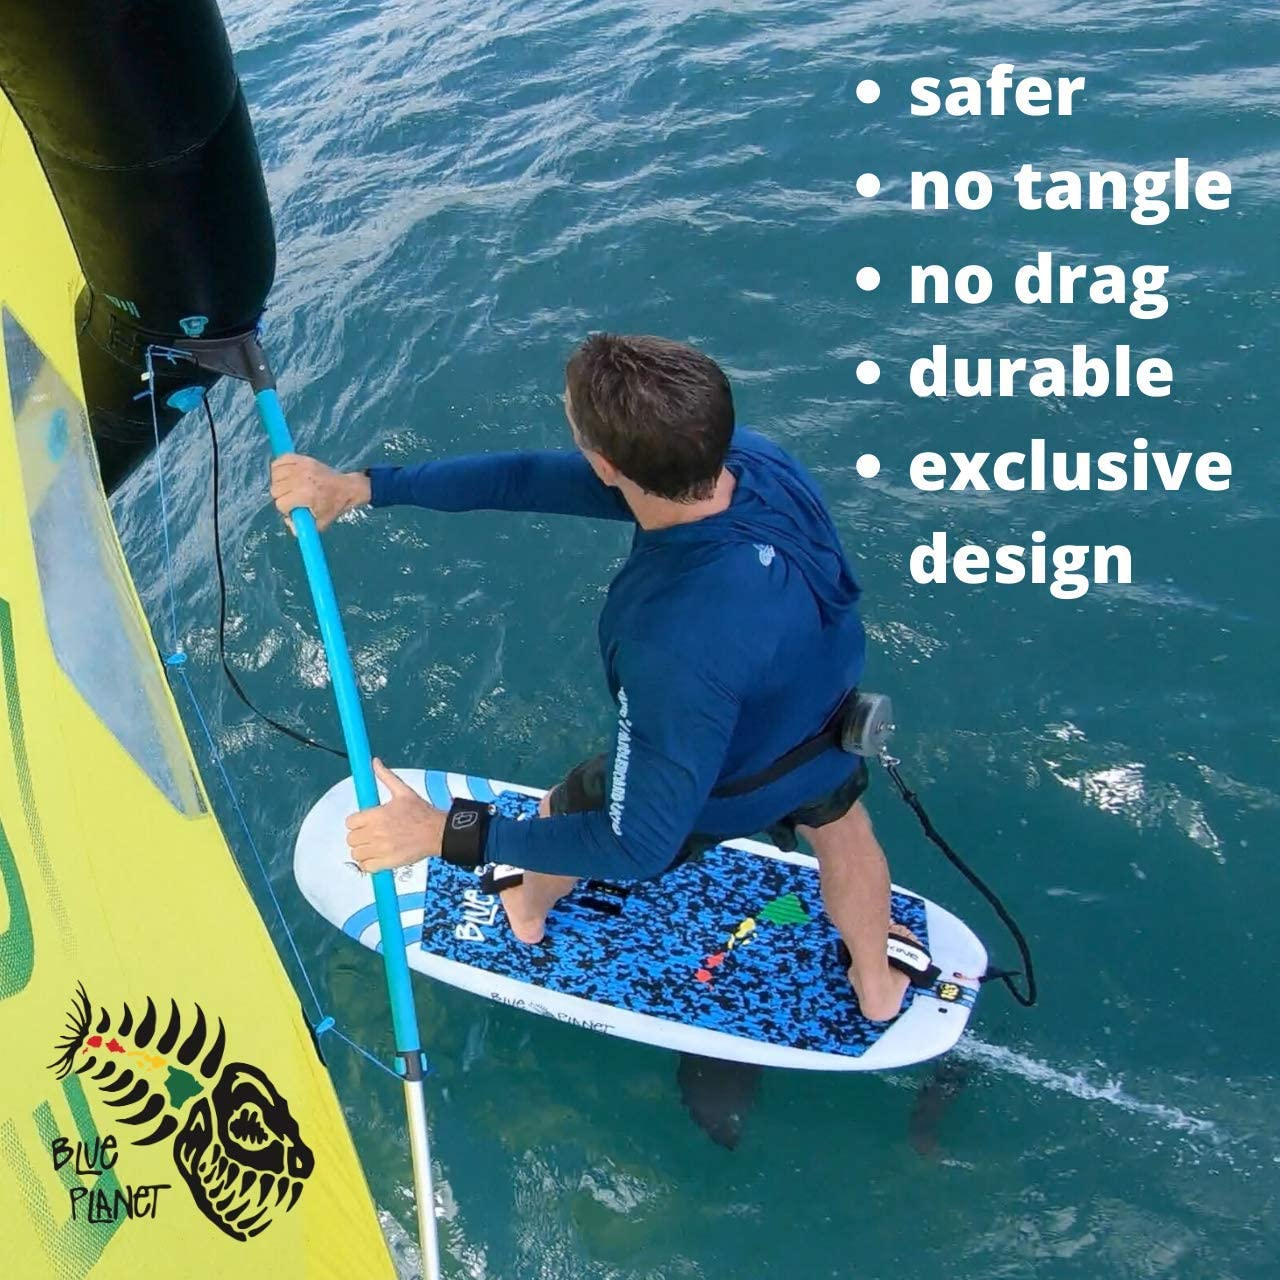 Includes Waist Belt for Secure Blue Planet Foil Waist Leash with Shock Cord Safe Quick Release Reel Leash Designed for SUP Foiling and Wing Foiling Easy Connection